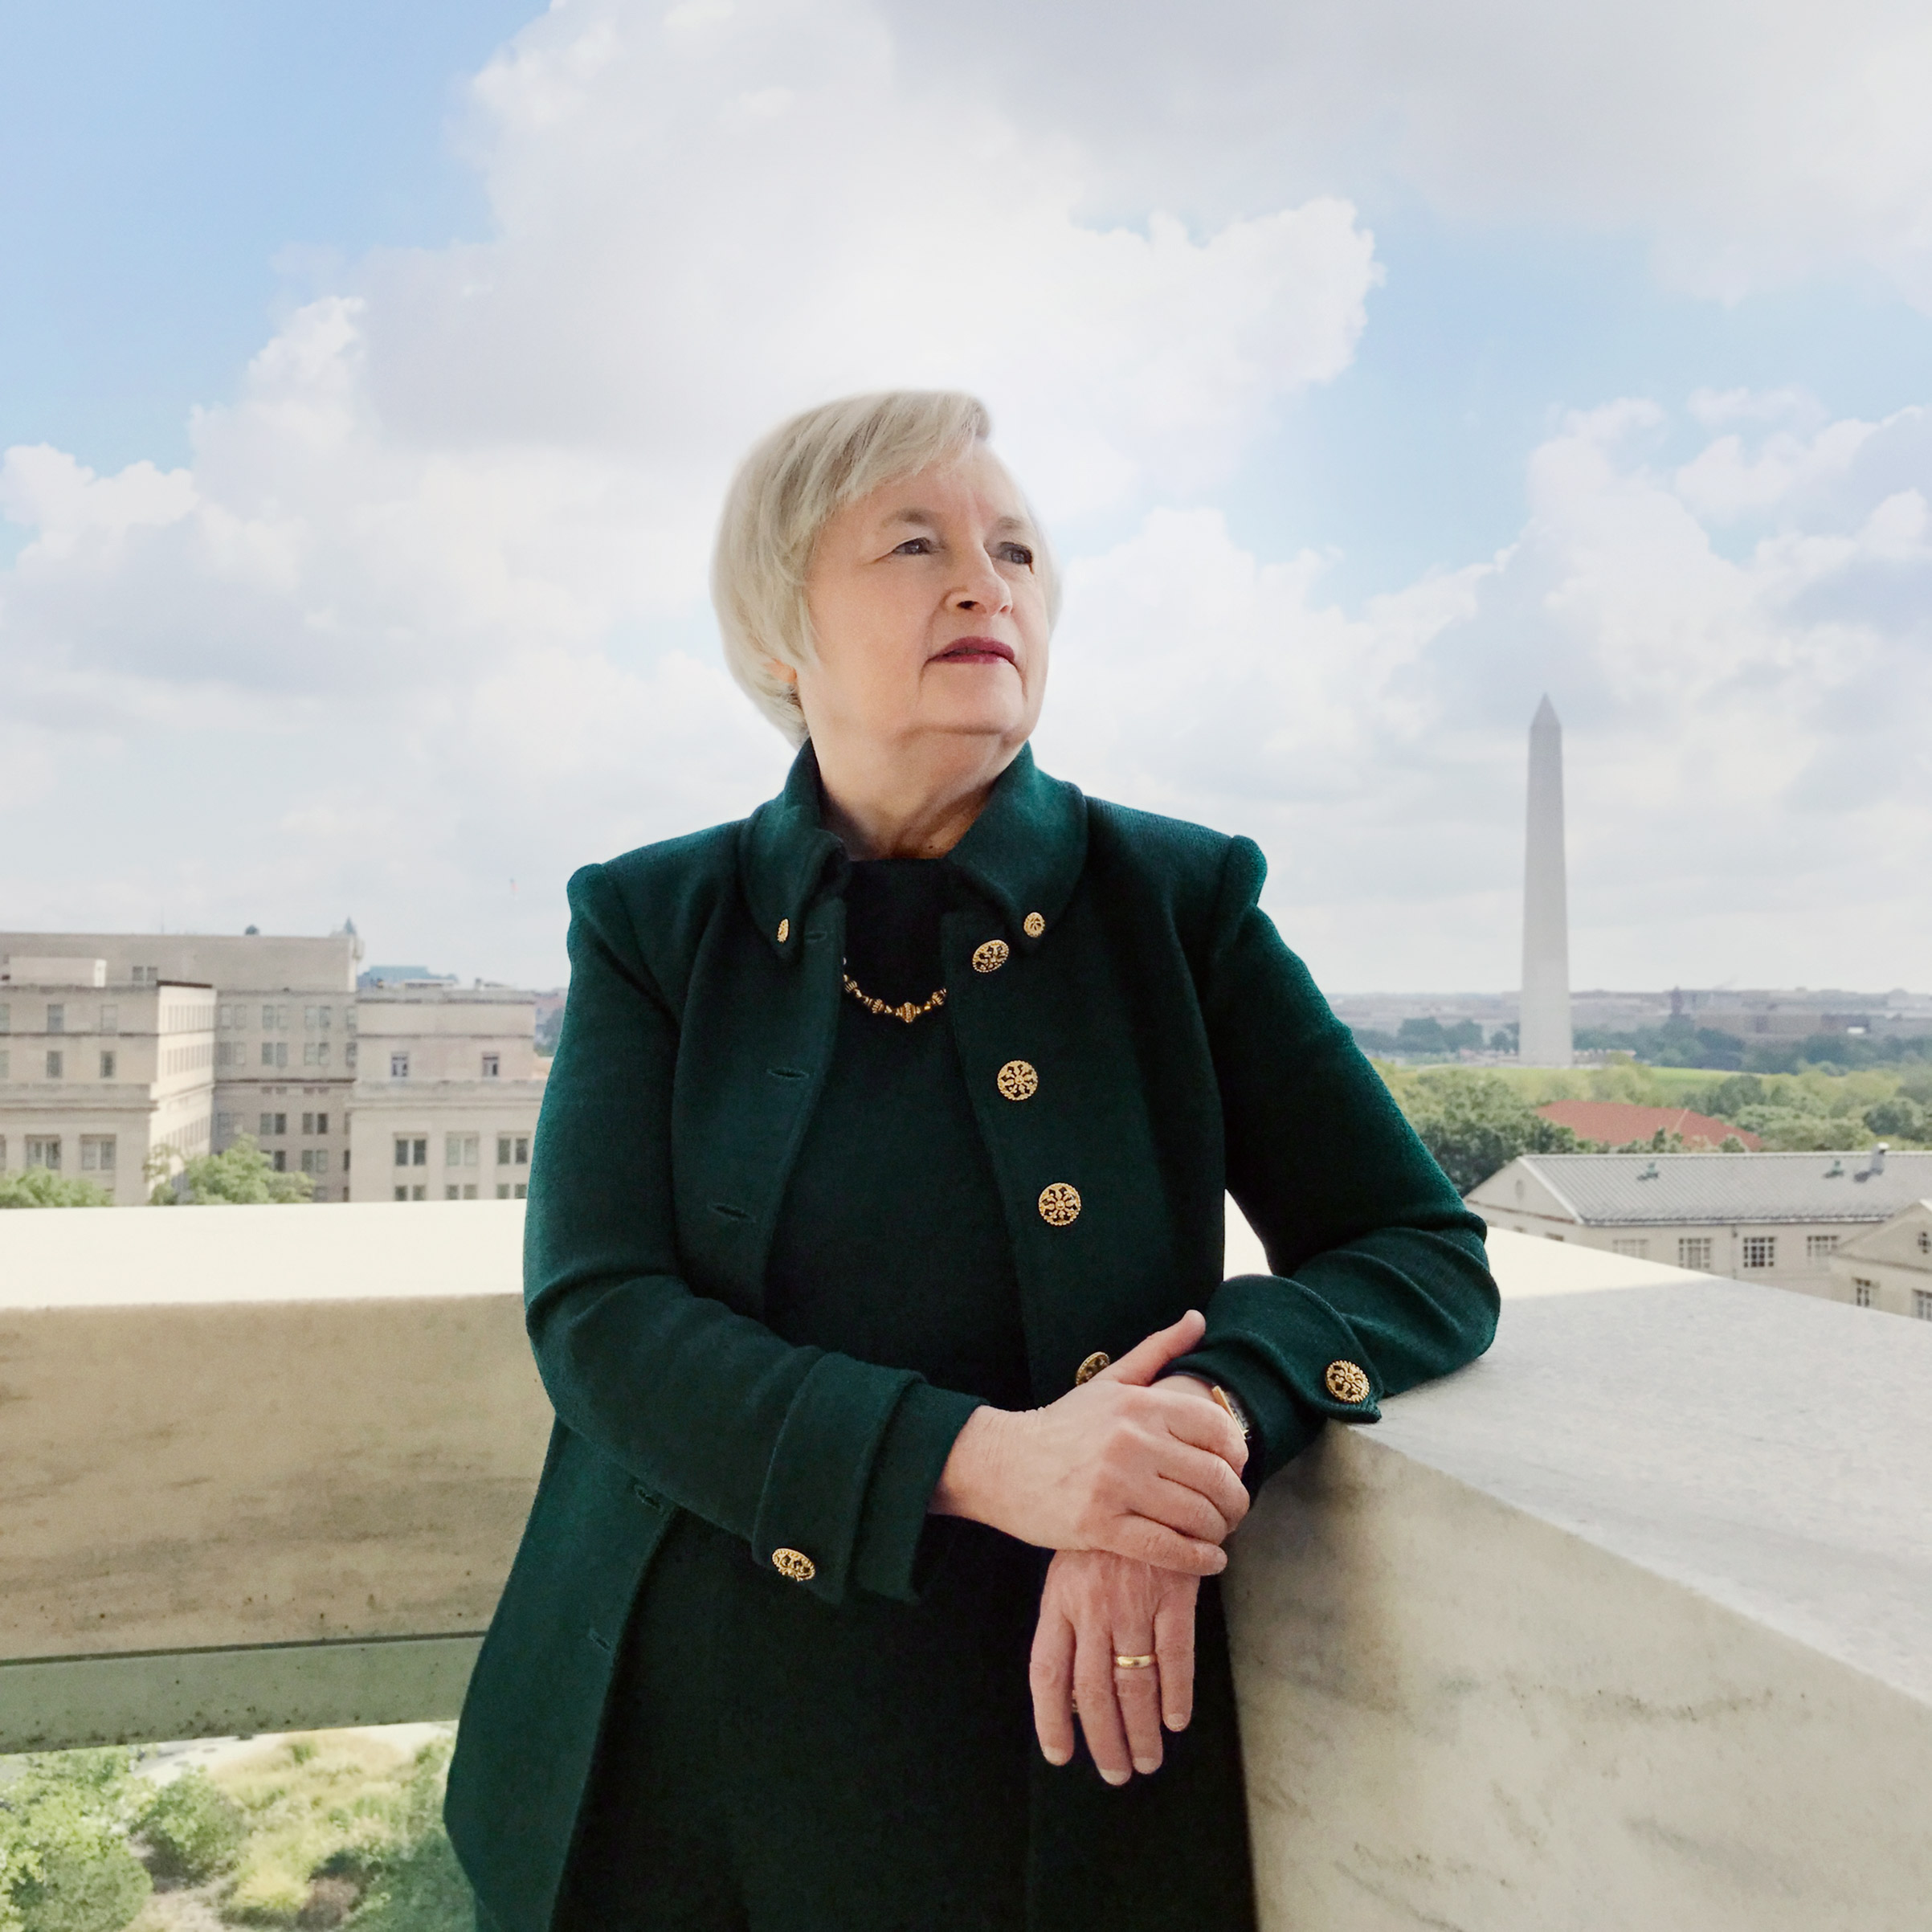 Portrait of Chairwoman Janet Yellen, photographed on the Federal Reserve's cafetria terrace, Washington, D.C., October 4, 2016.